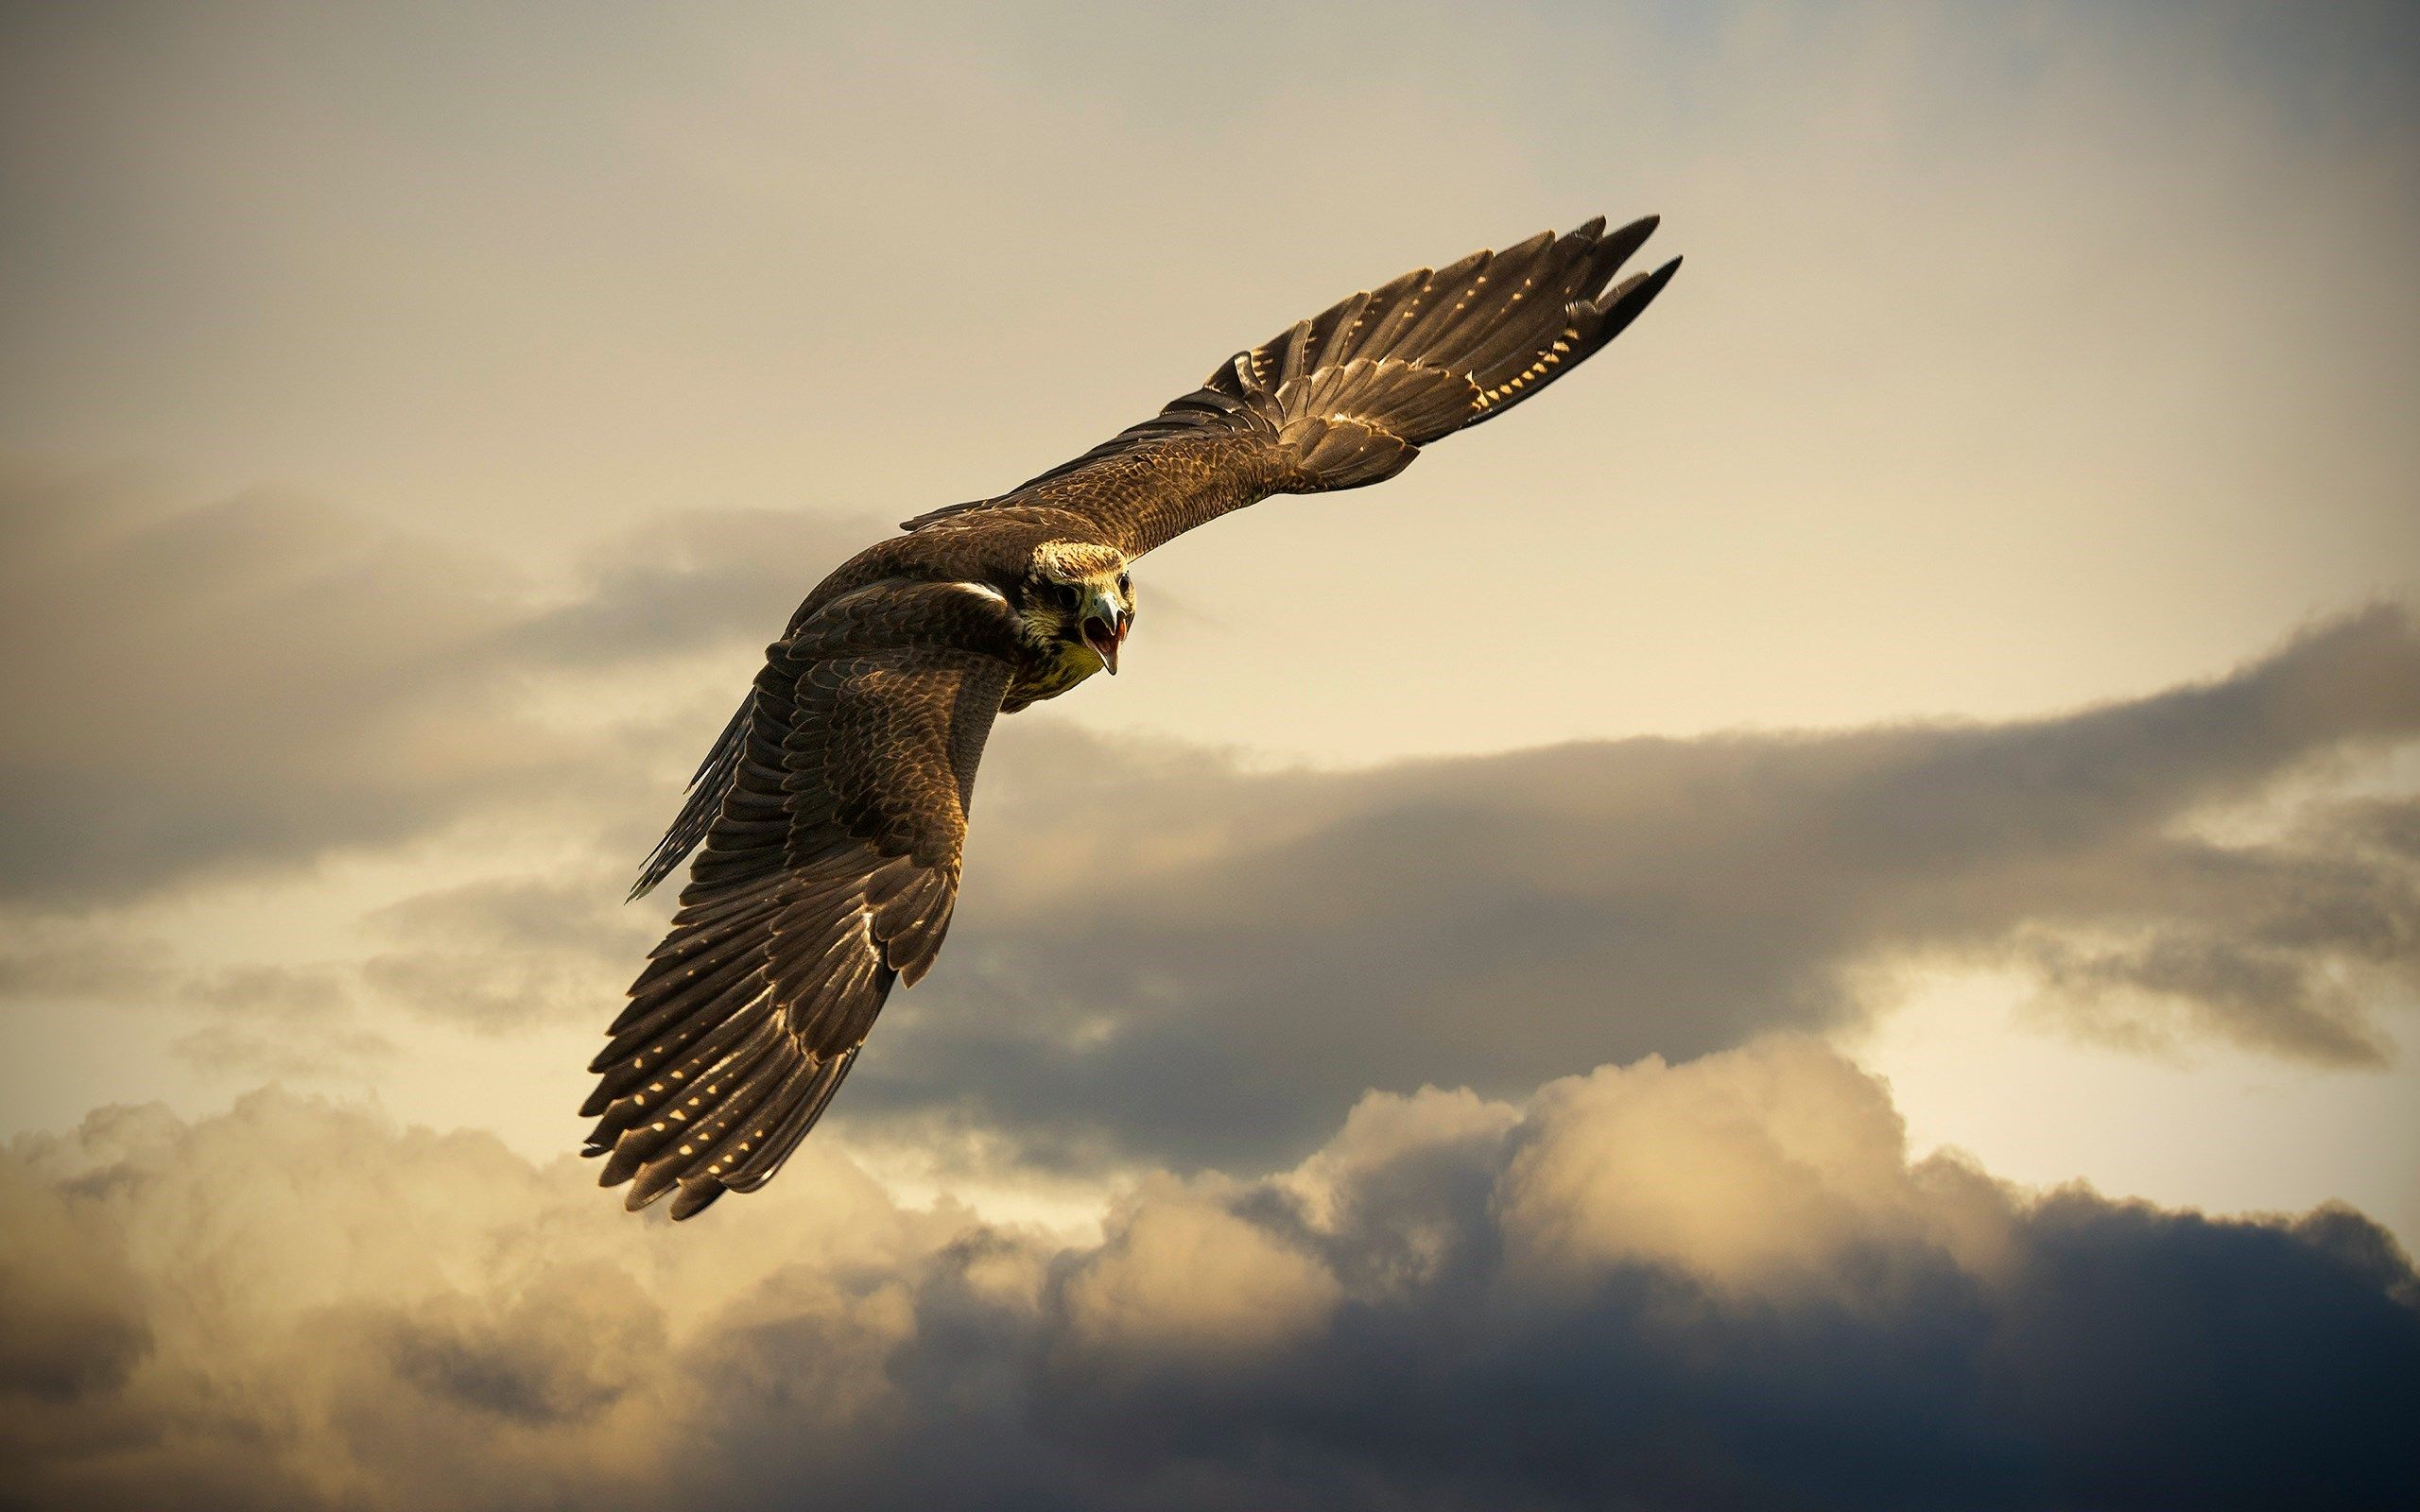 Bird Falcon Flying Cloudy Sky HD Wallpaper - ZoomWalls ...